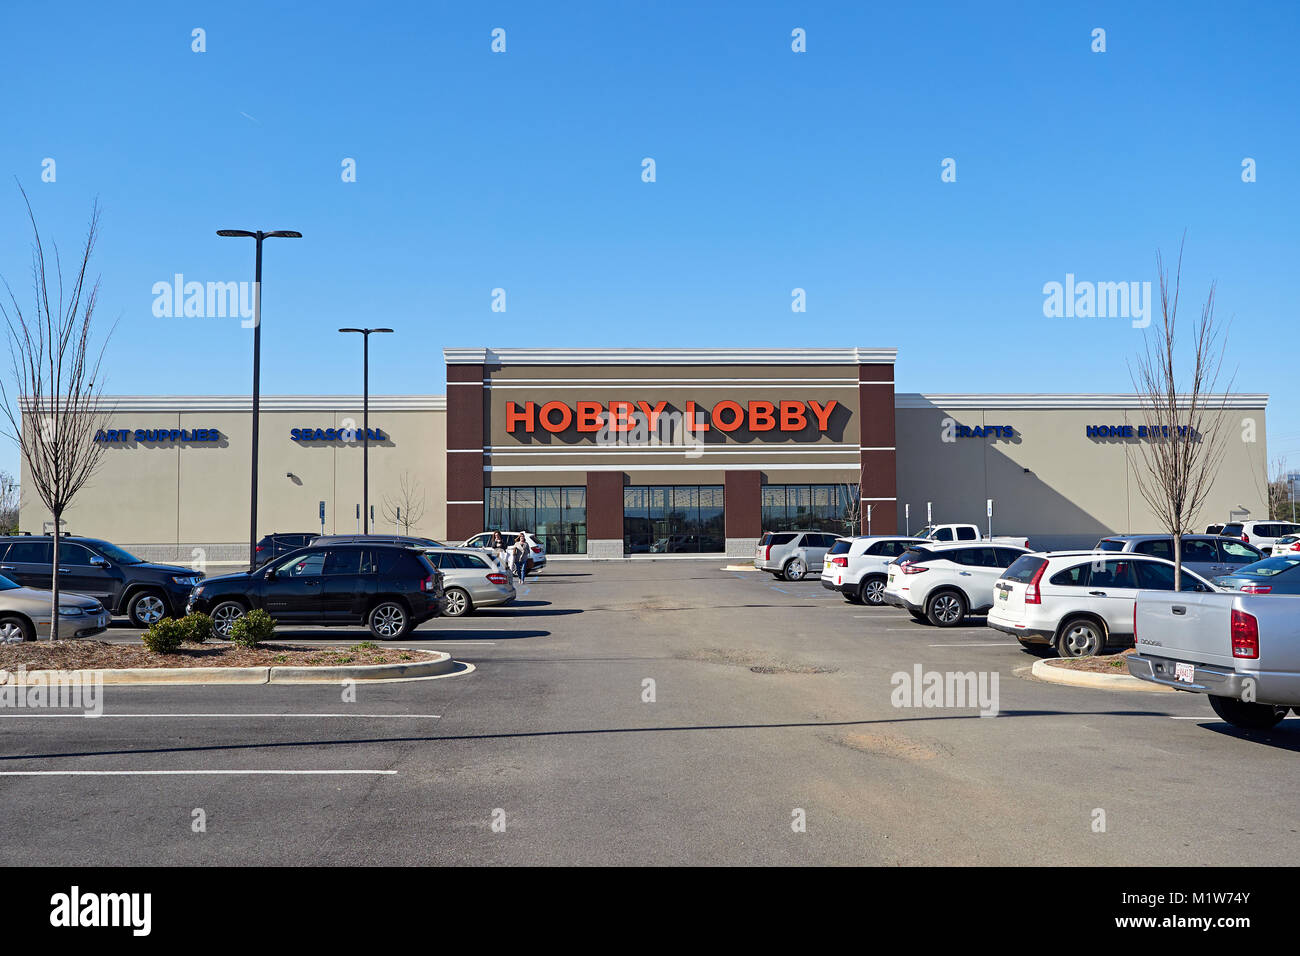 Front Exterior Entrance To The Hobby Lobby Arts And Crafts Store In Montgomery Alabama USA